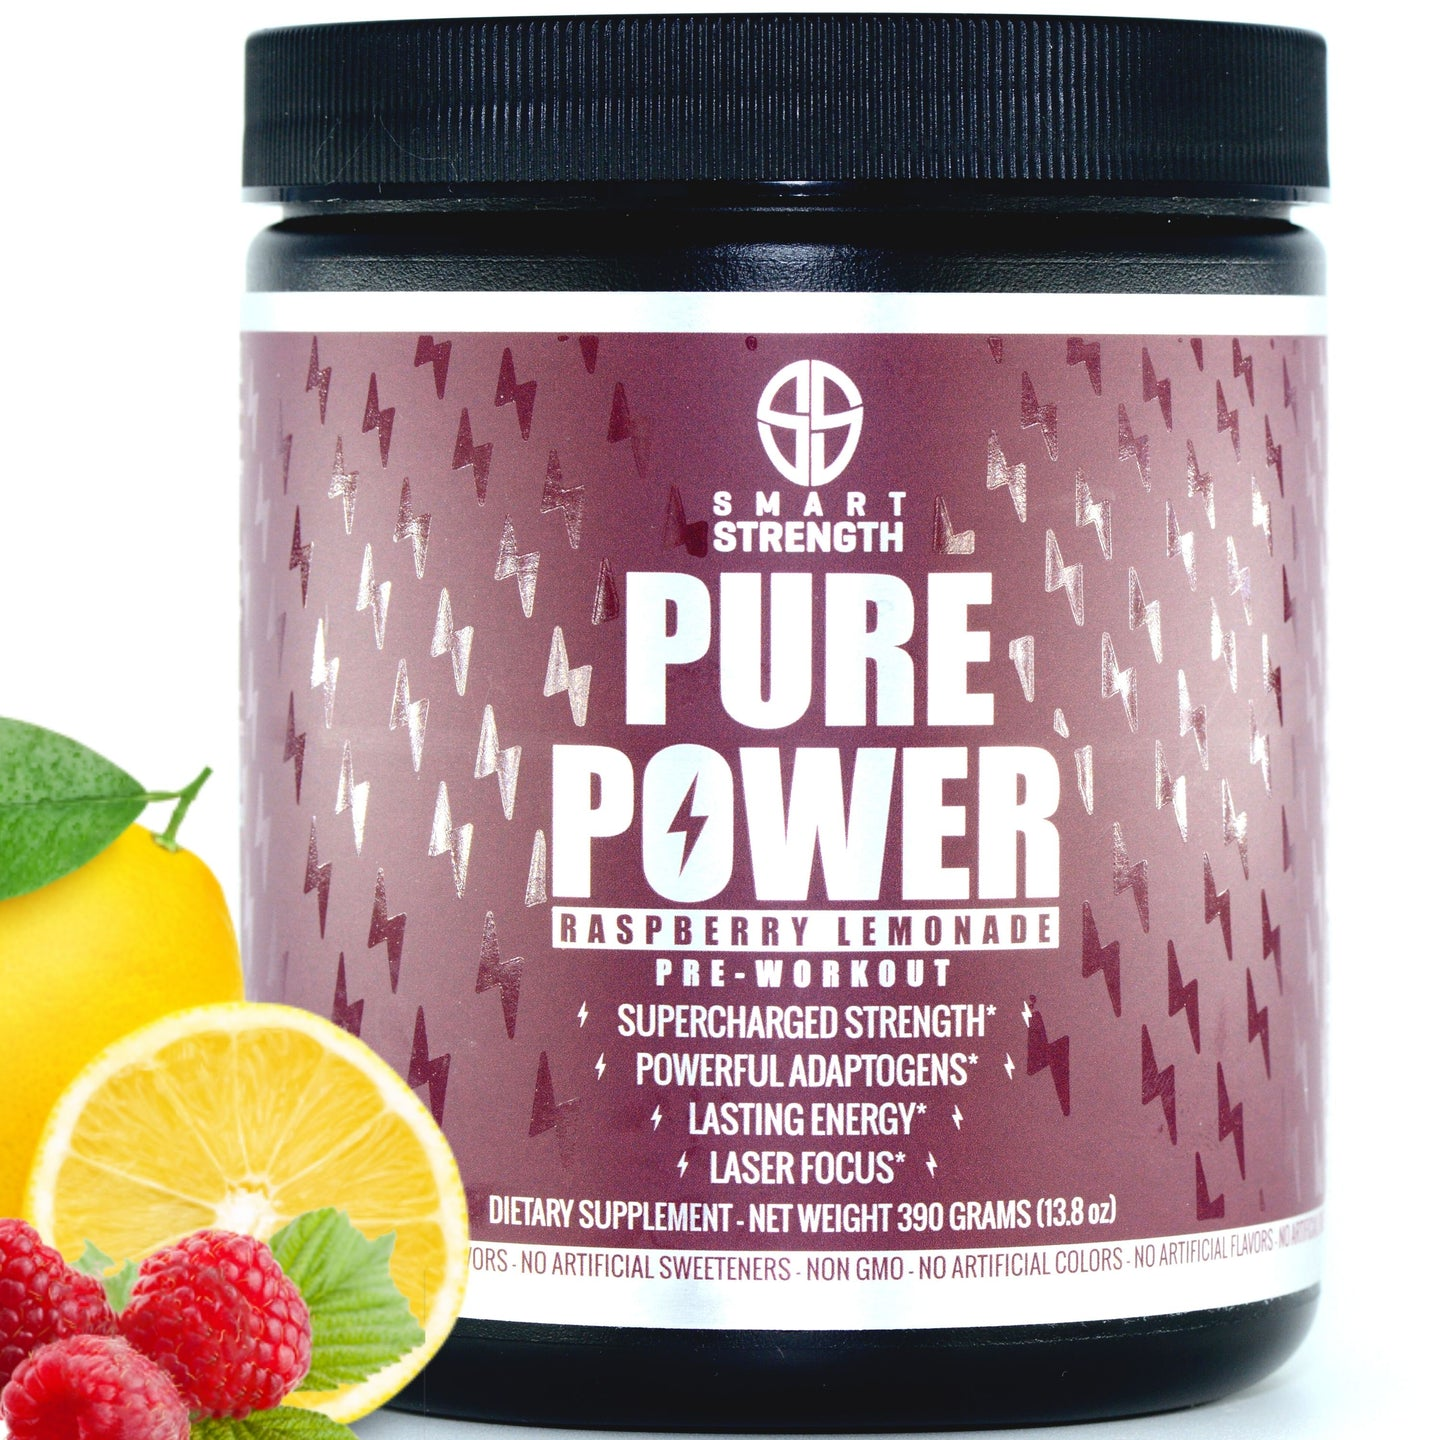 PURE POWER NATURAL PRE WORKOUT - 390 grams (13.8 oz) - NEW STOCK